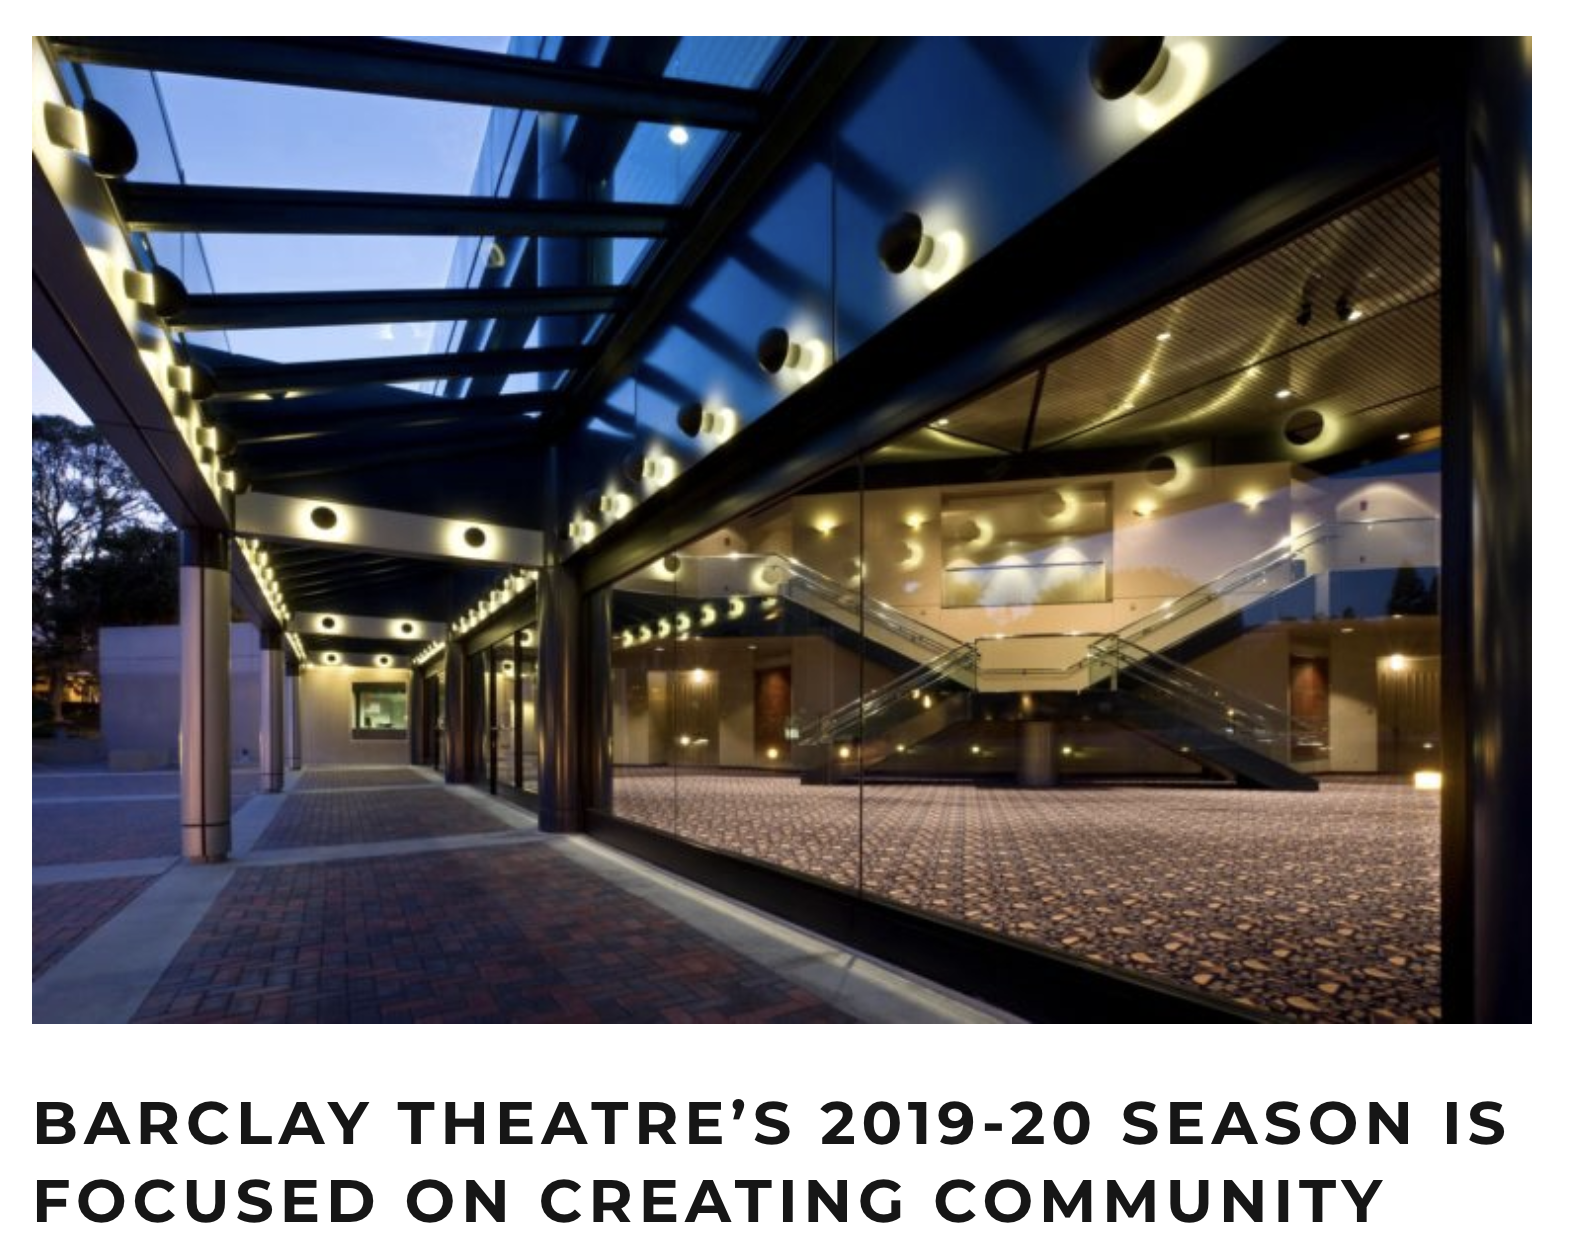 Barclay Theatre's 2019-20 Season is Focused on Creating Community